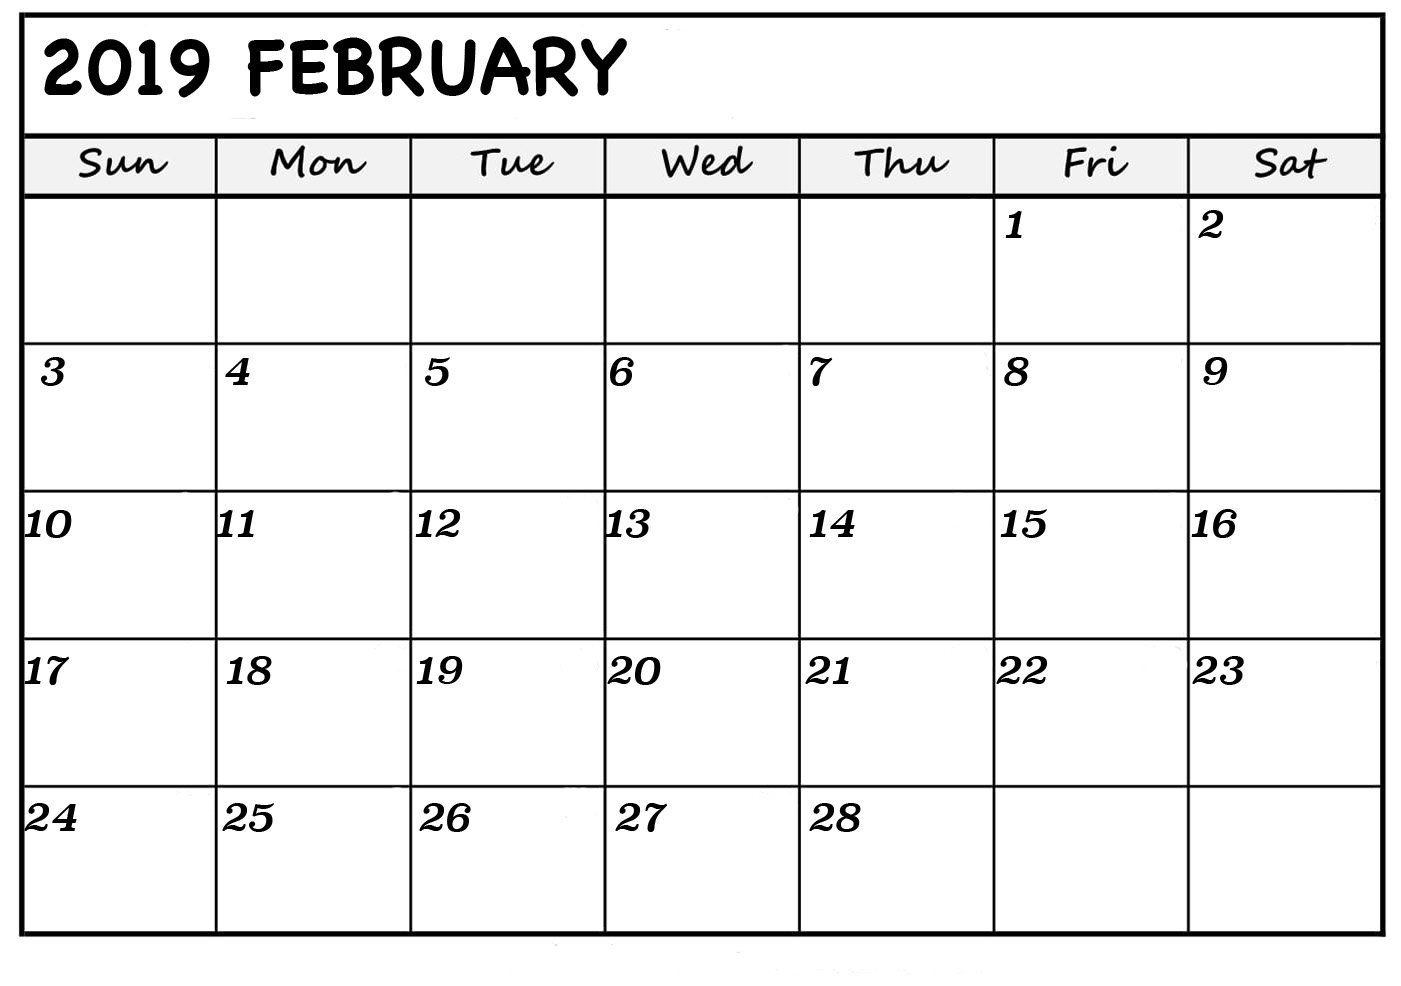 February 2019 Printable Calendars - Fresh Calendars A Calendar For February 2019